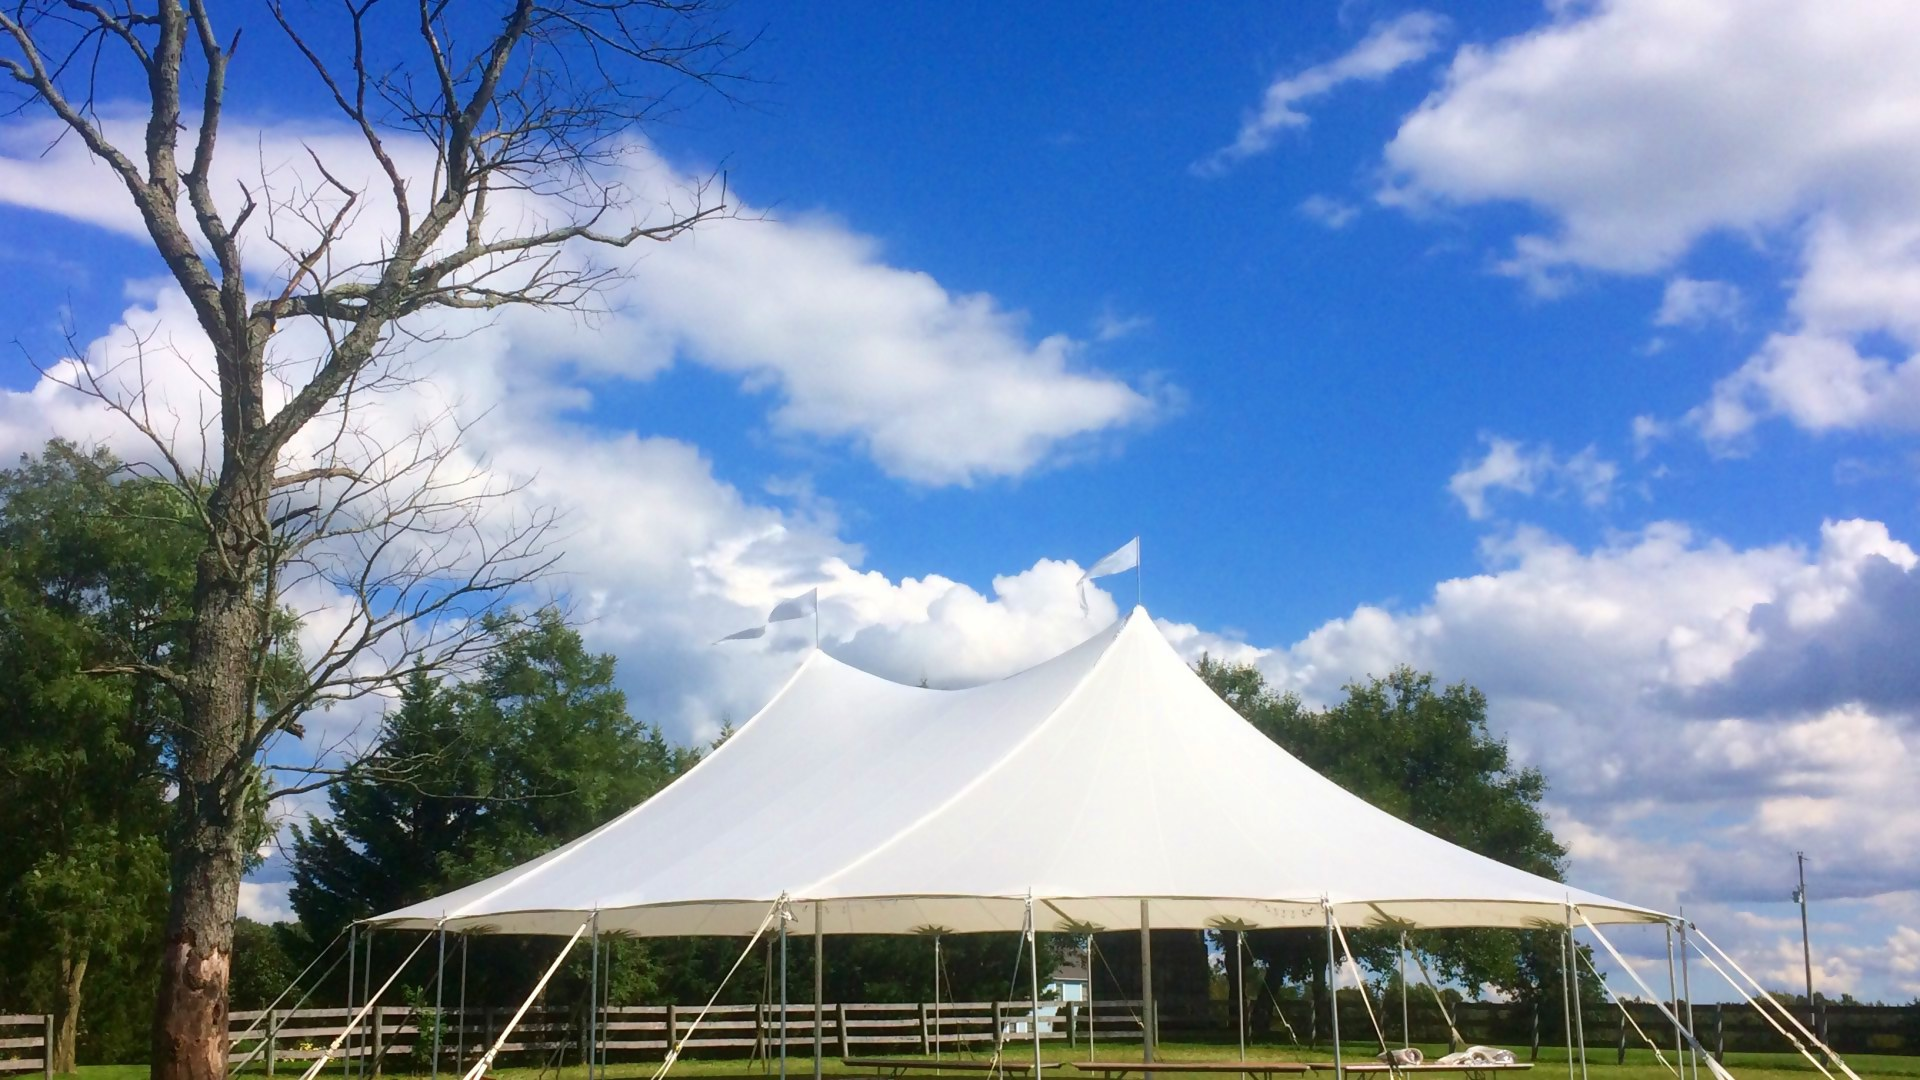 Beautiful Sailcloth for rent in Easton, PA